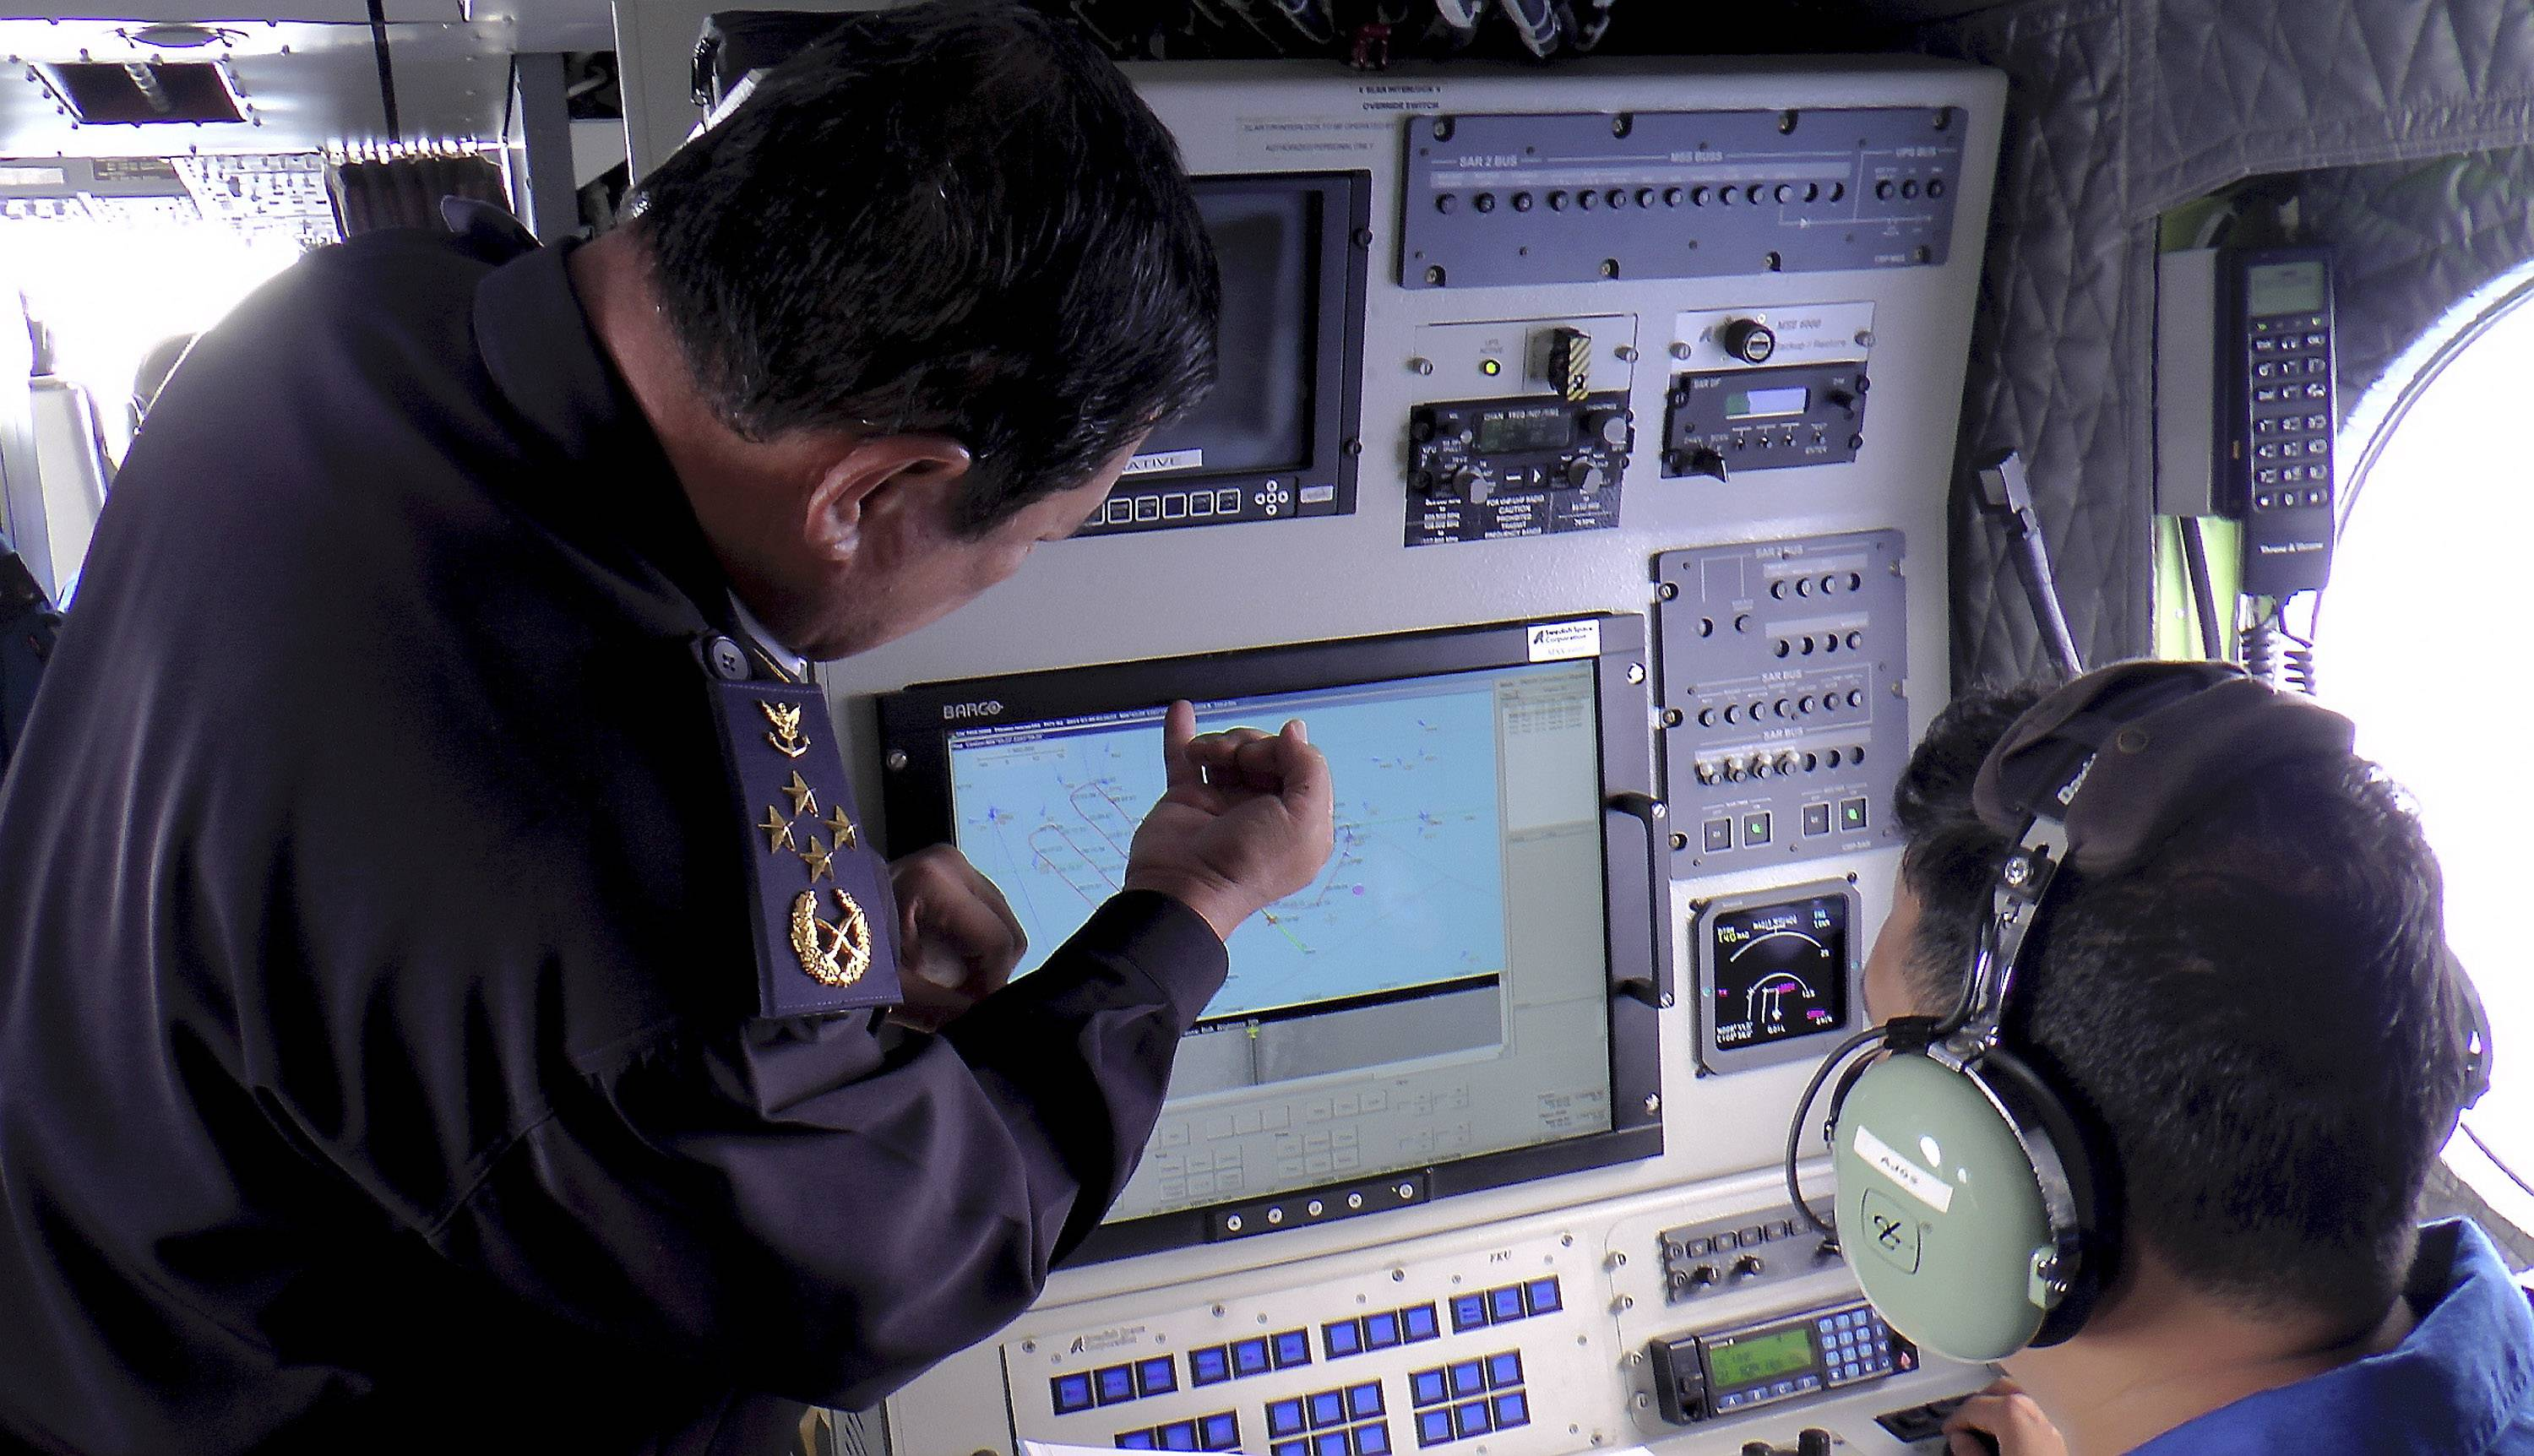 Director General of the Malaysian Maritime Enforcement Agency Admiral Mohd Amdan Kurish, left, checks radar Sunday during a search for the missing Malaysia Airlines plane off Tok Bali Beach in Kelantan, Malaysia. Military radar indicates the missing Boeing 777 jet may have turned back, Malaysia's air force chief said Sunday as scores of ships and aircraft from across Asia resumed a hunt for the plane and its 239 passengers.